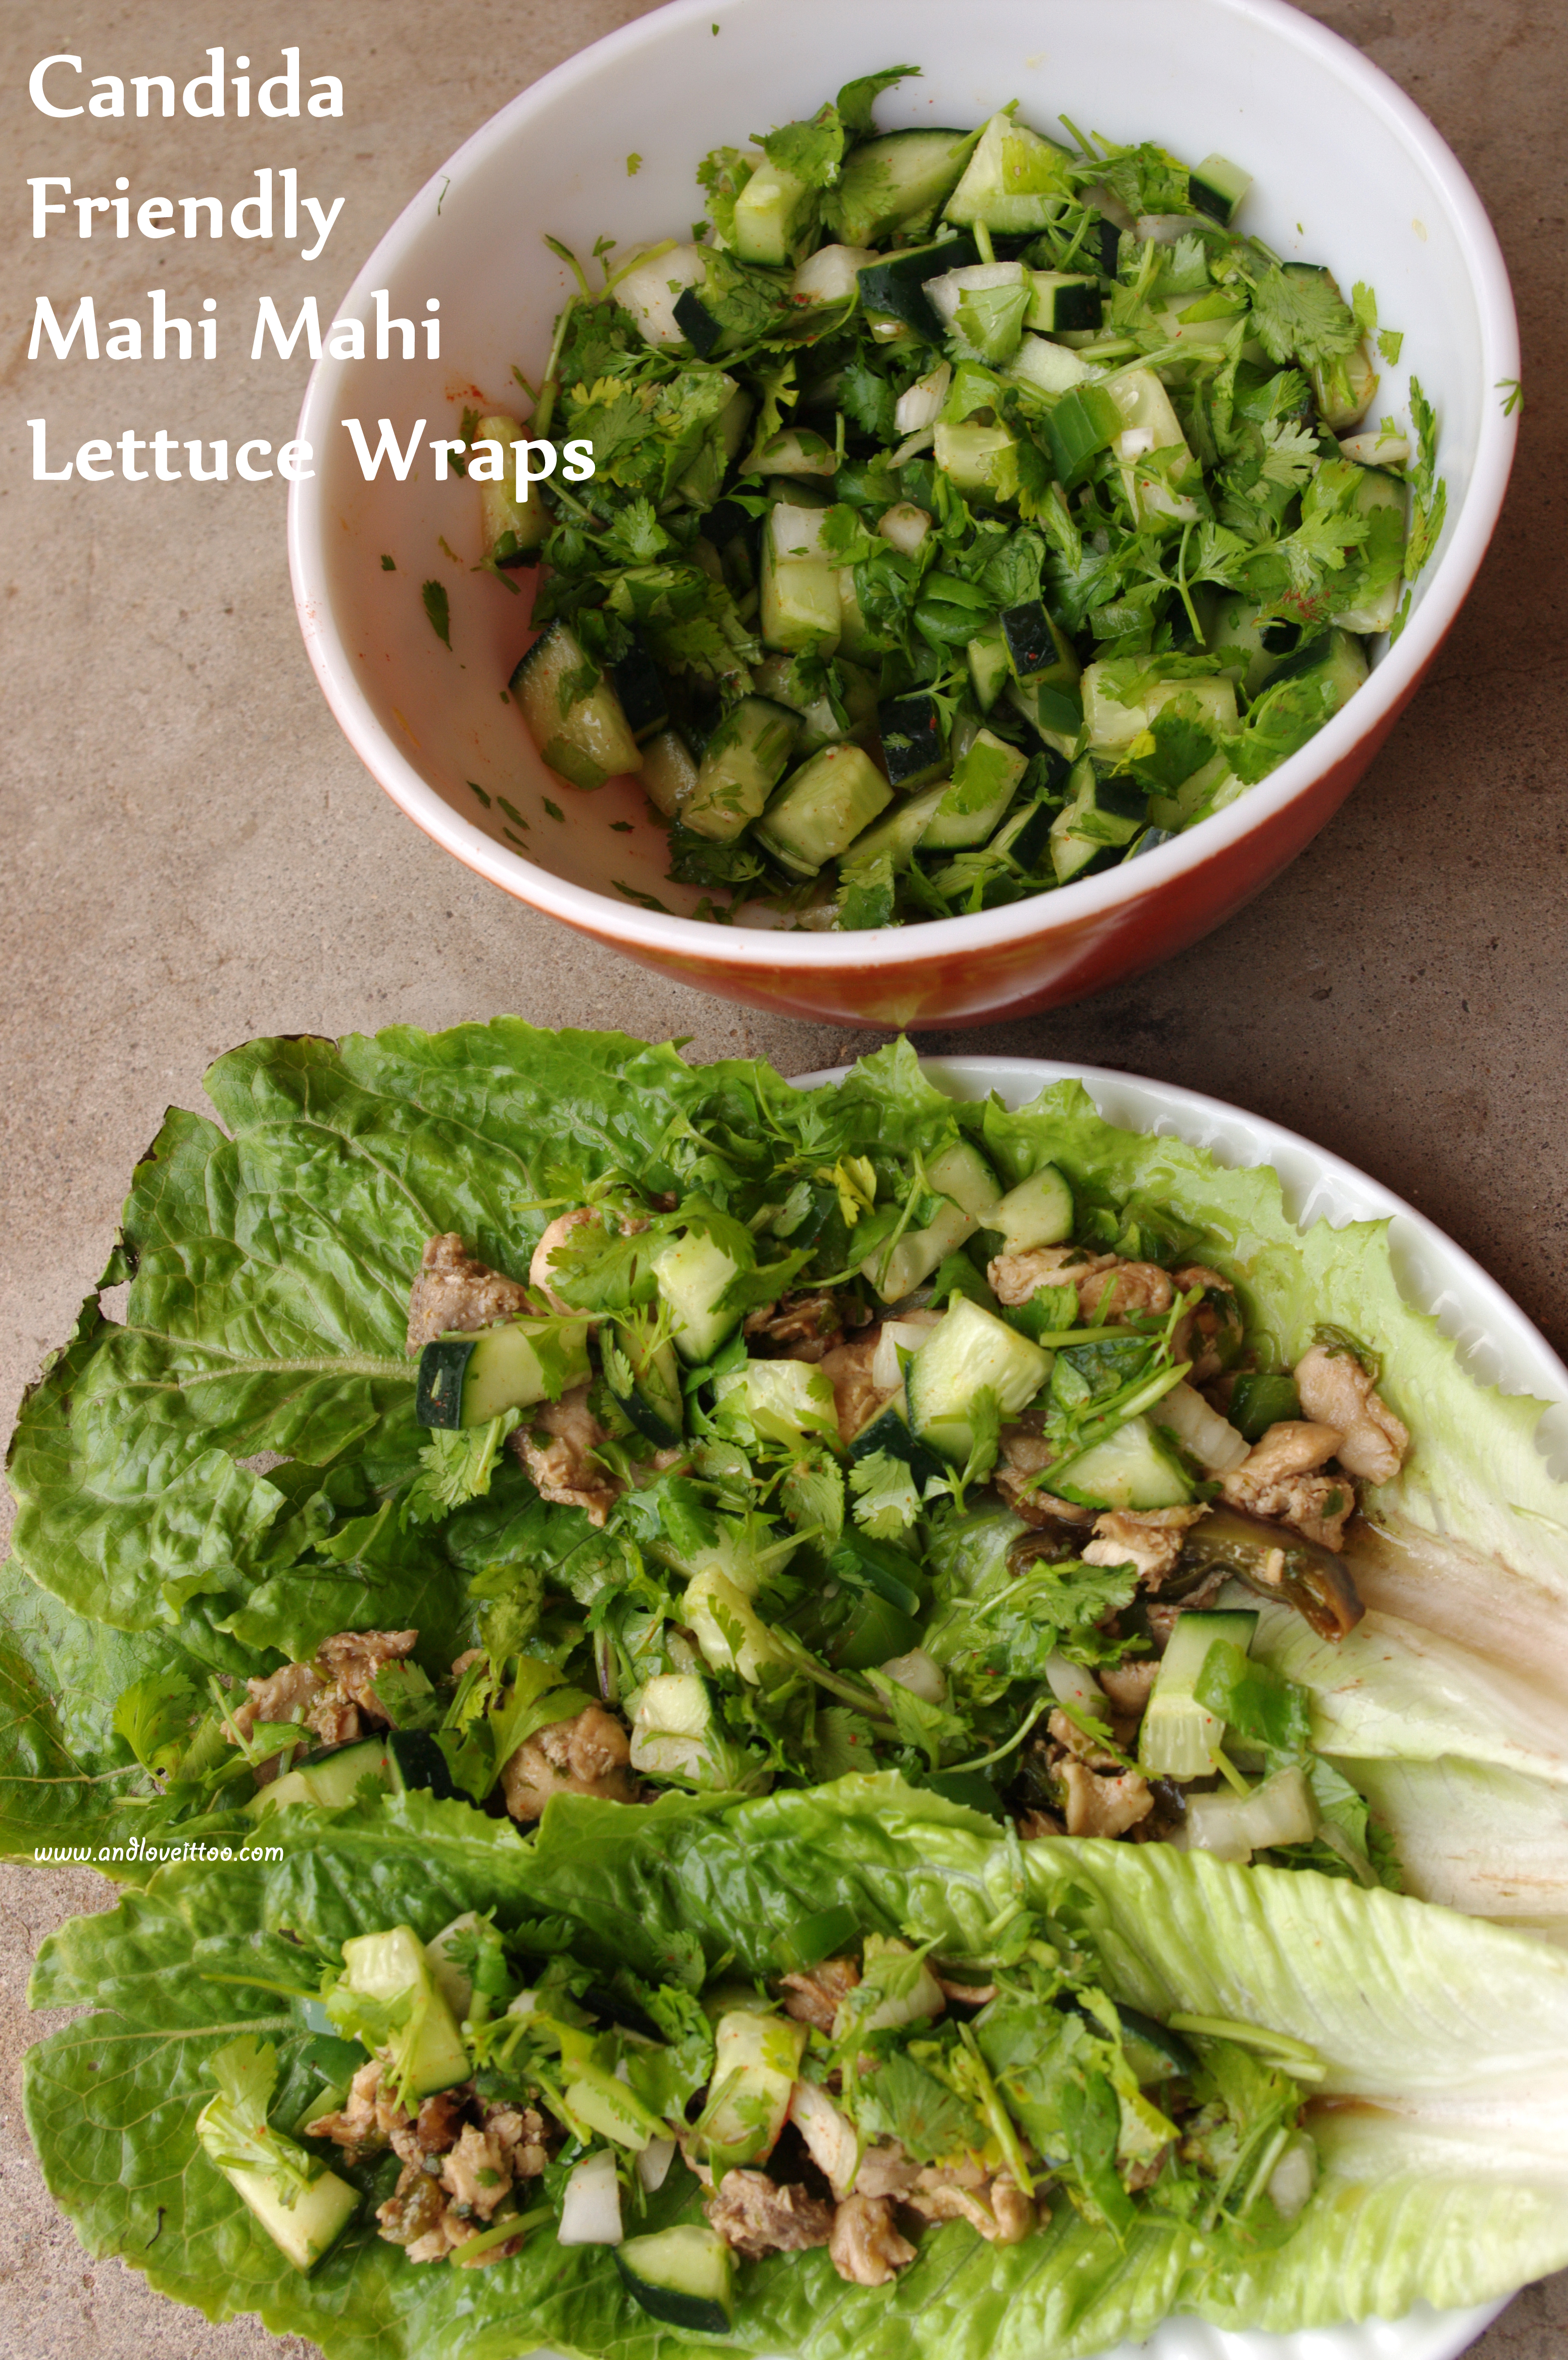 Candida Friendly Mahi Mahi Lettuce Wraps